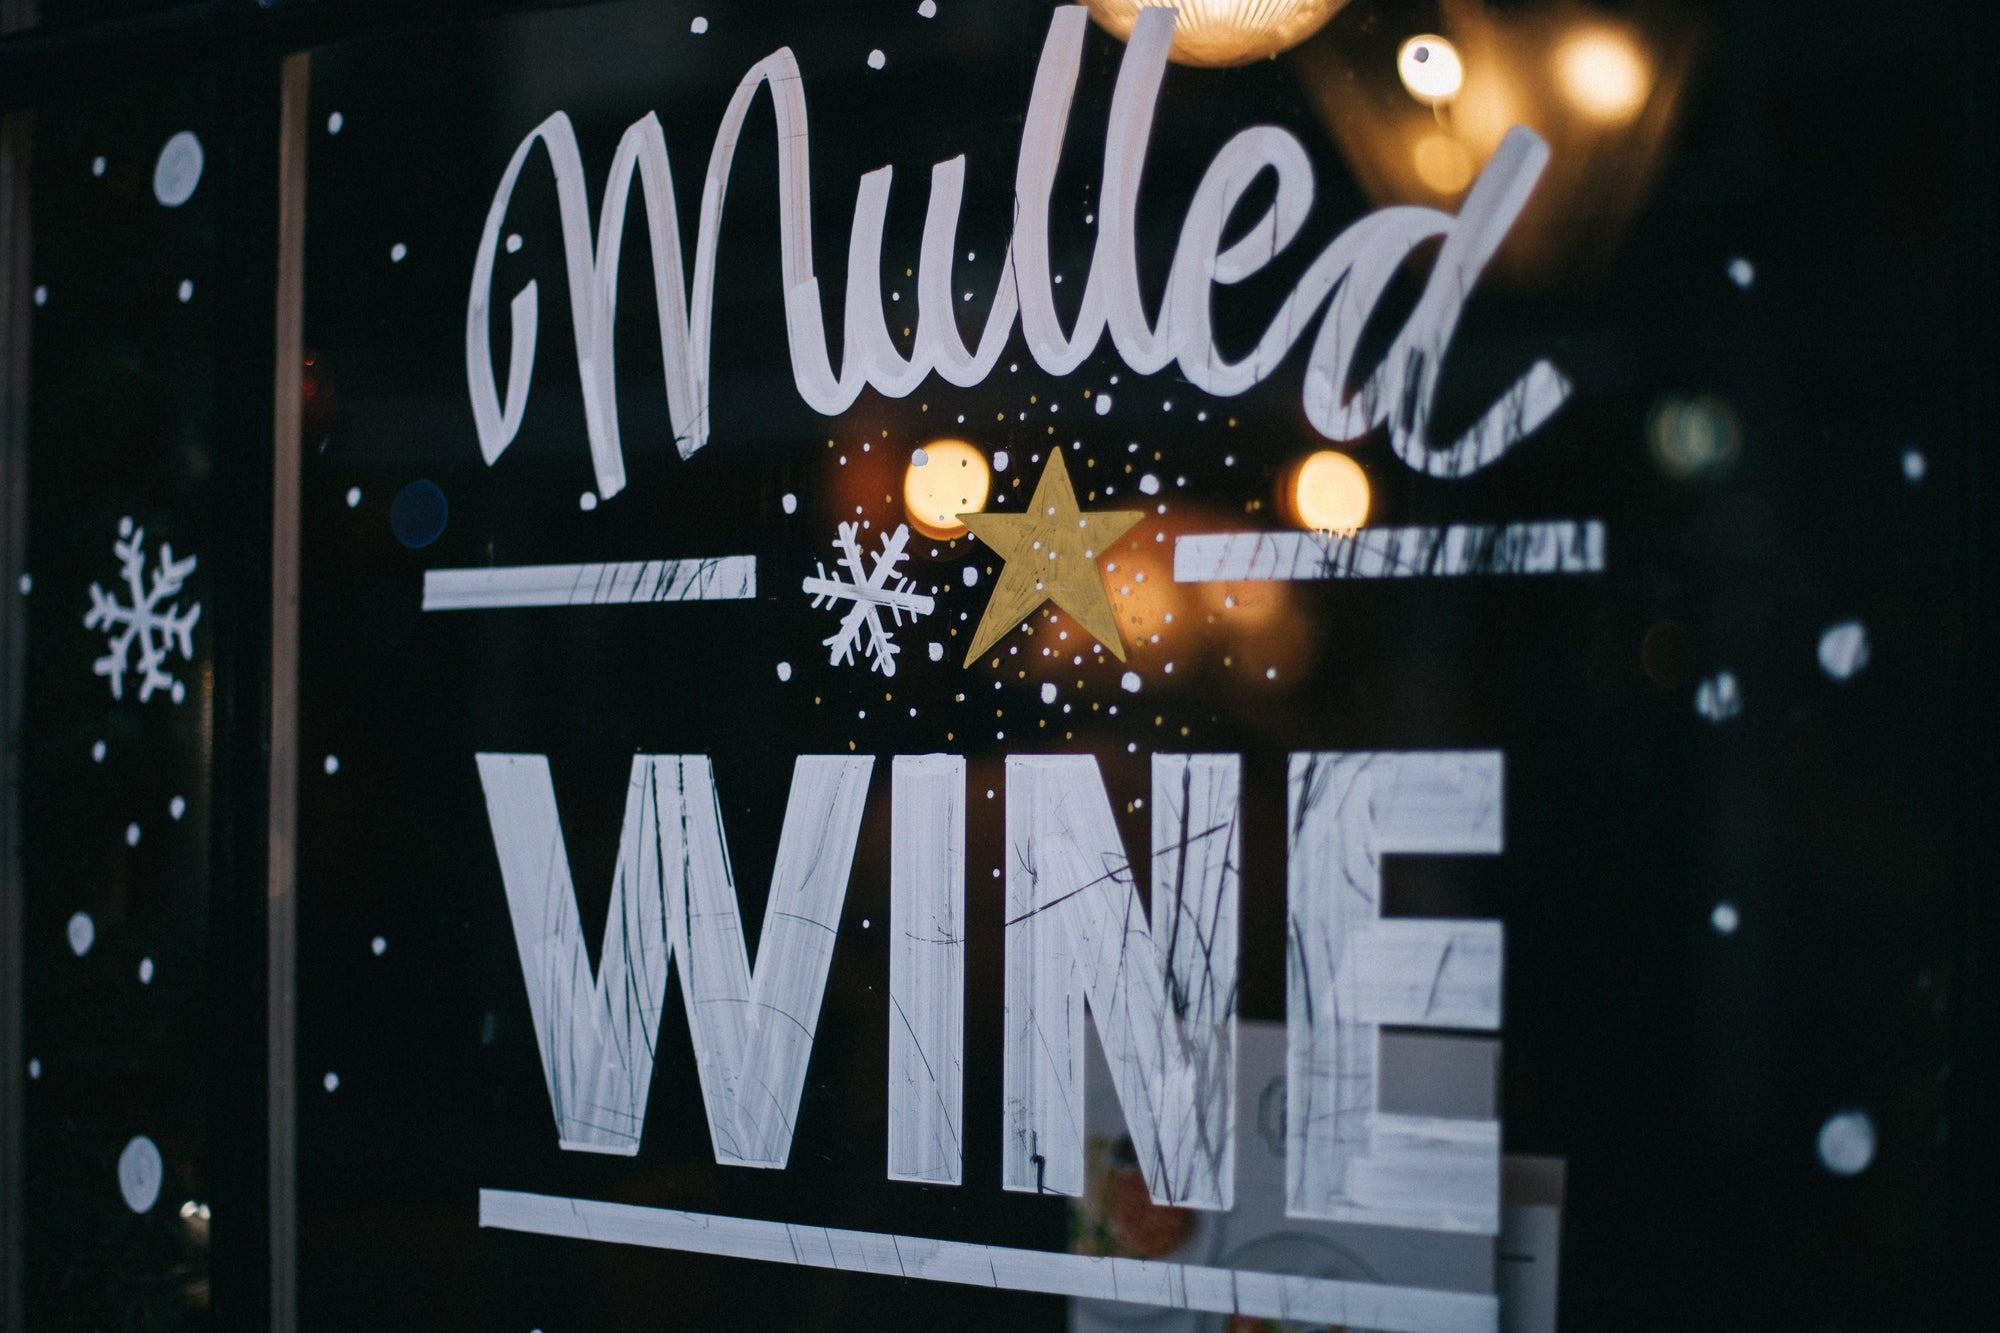 HOW TO: MAKE THE PERFECT MULLED WINE